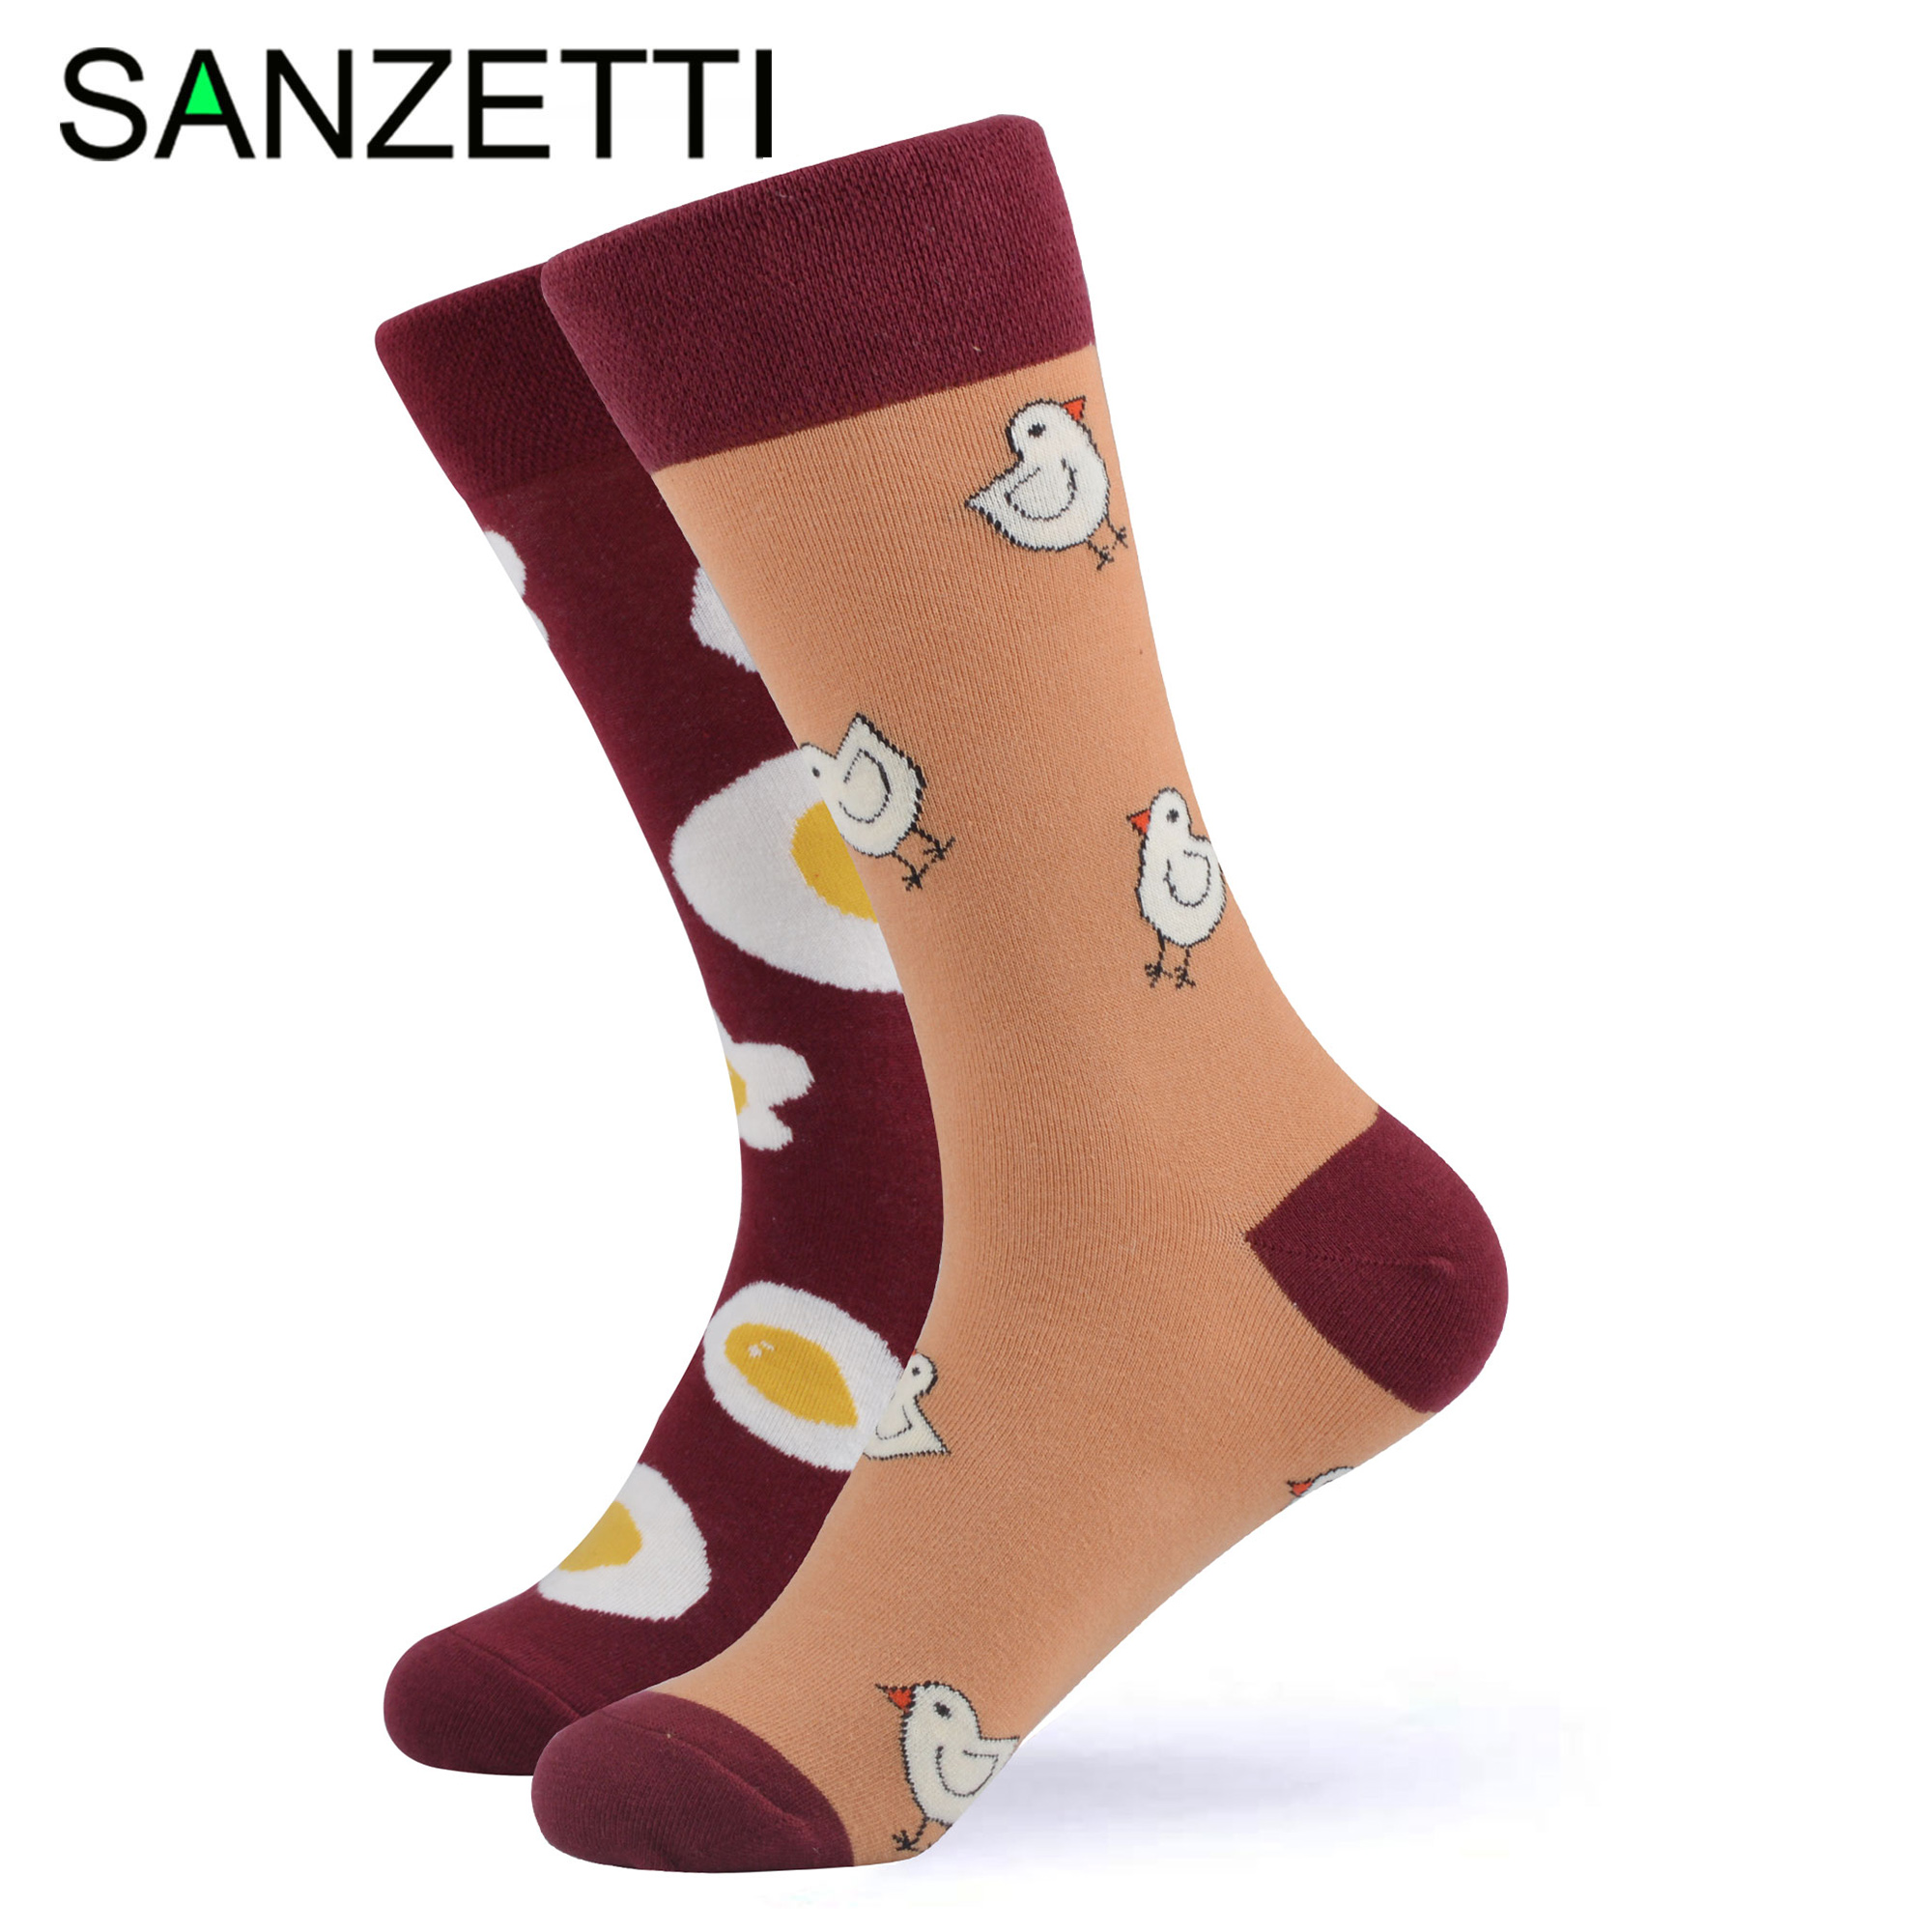 SANZETTI 1 Pair Colorful Bright Women Socks Novelty Combed Cotton Funny Party Pineapple Wine Egg Gifts Wedding Dress Happy Socks